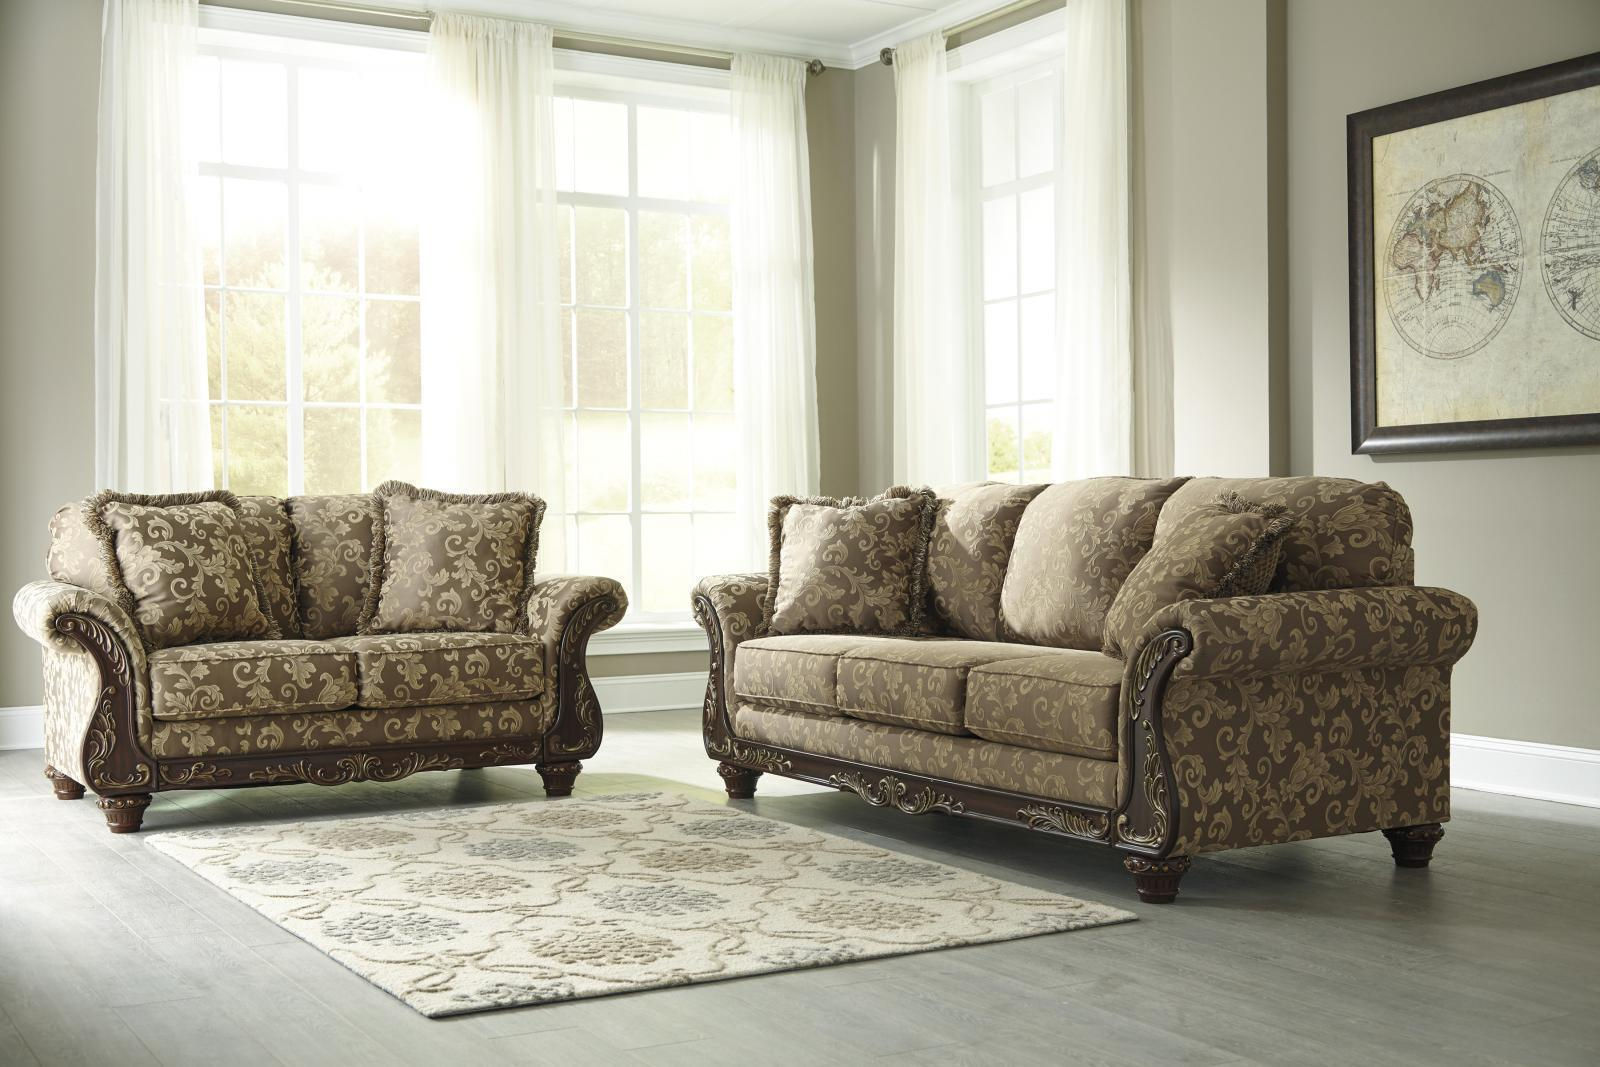 Ashley Irwindale Living Room Set 2pcs in Topaz Traditional Style